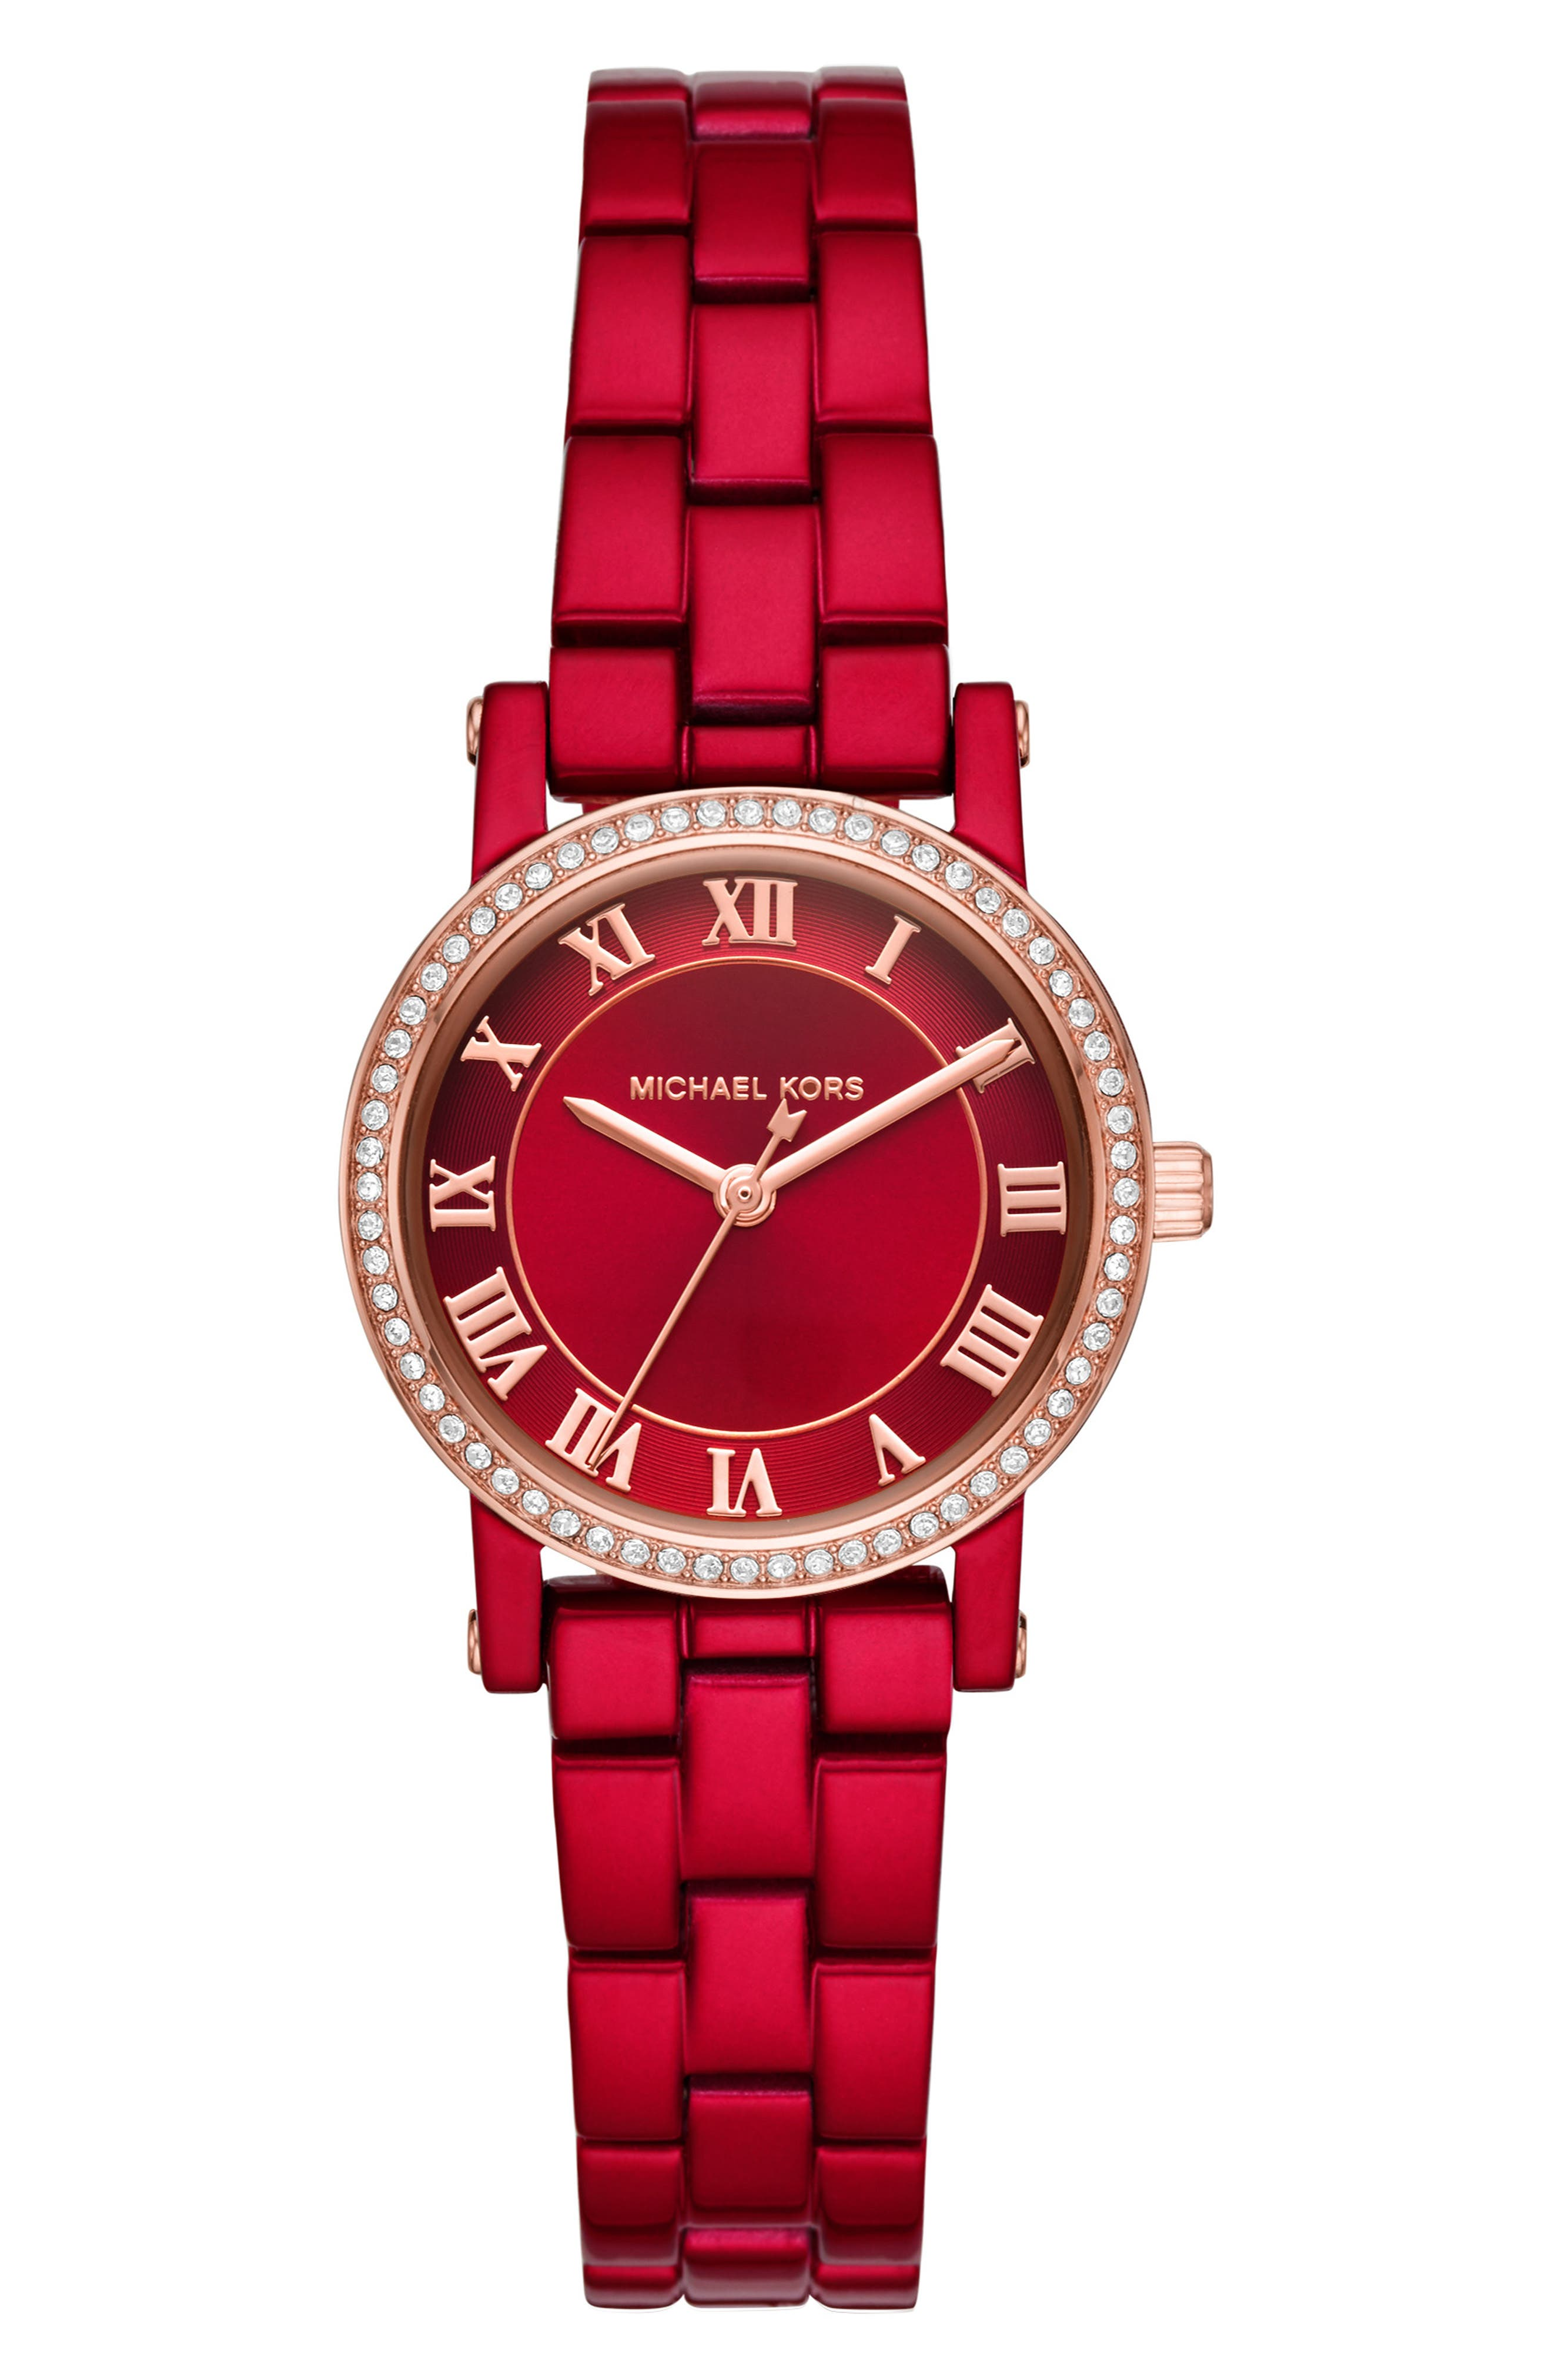 Norie Crystal Coated Stainless Steel Watch in Red